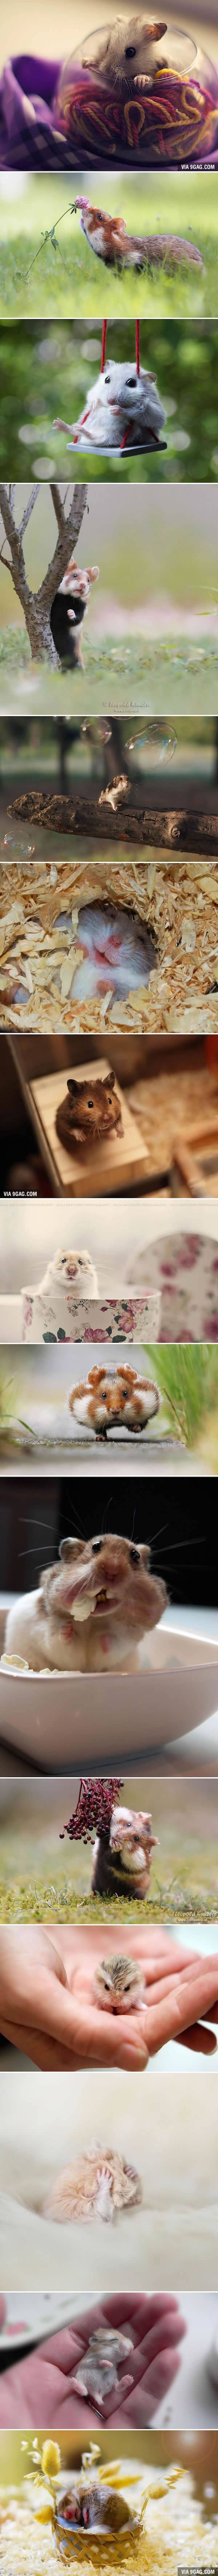 Adorable Hamsters That Will Cause A Cuteness Overload